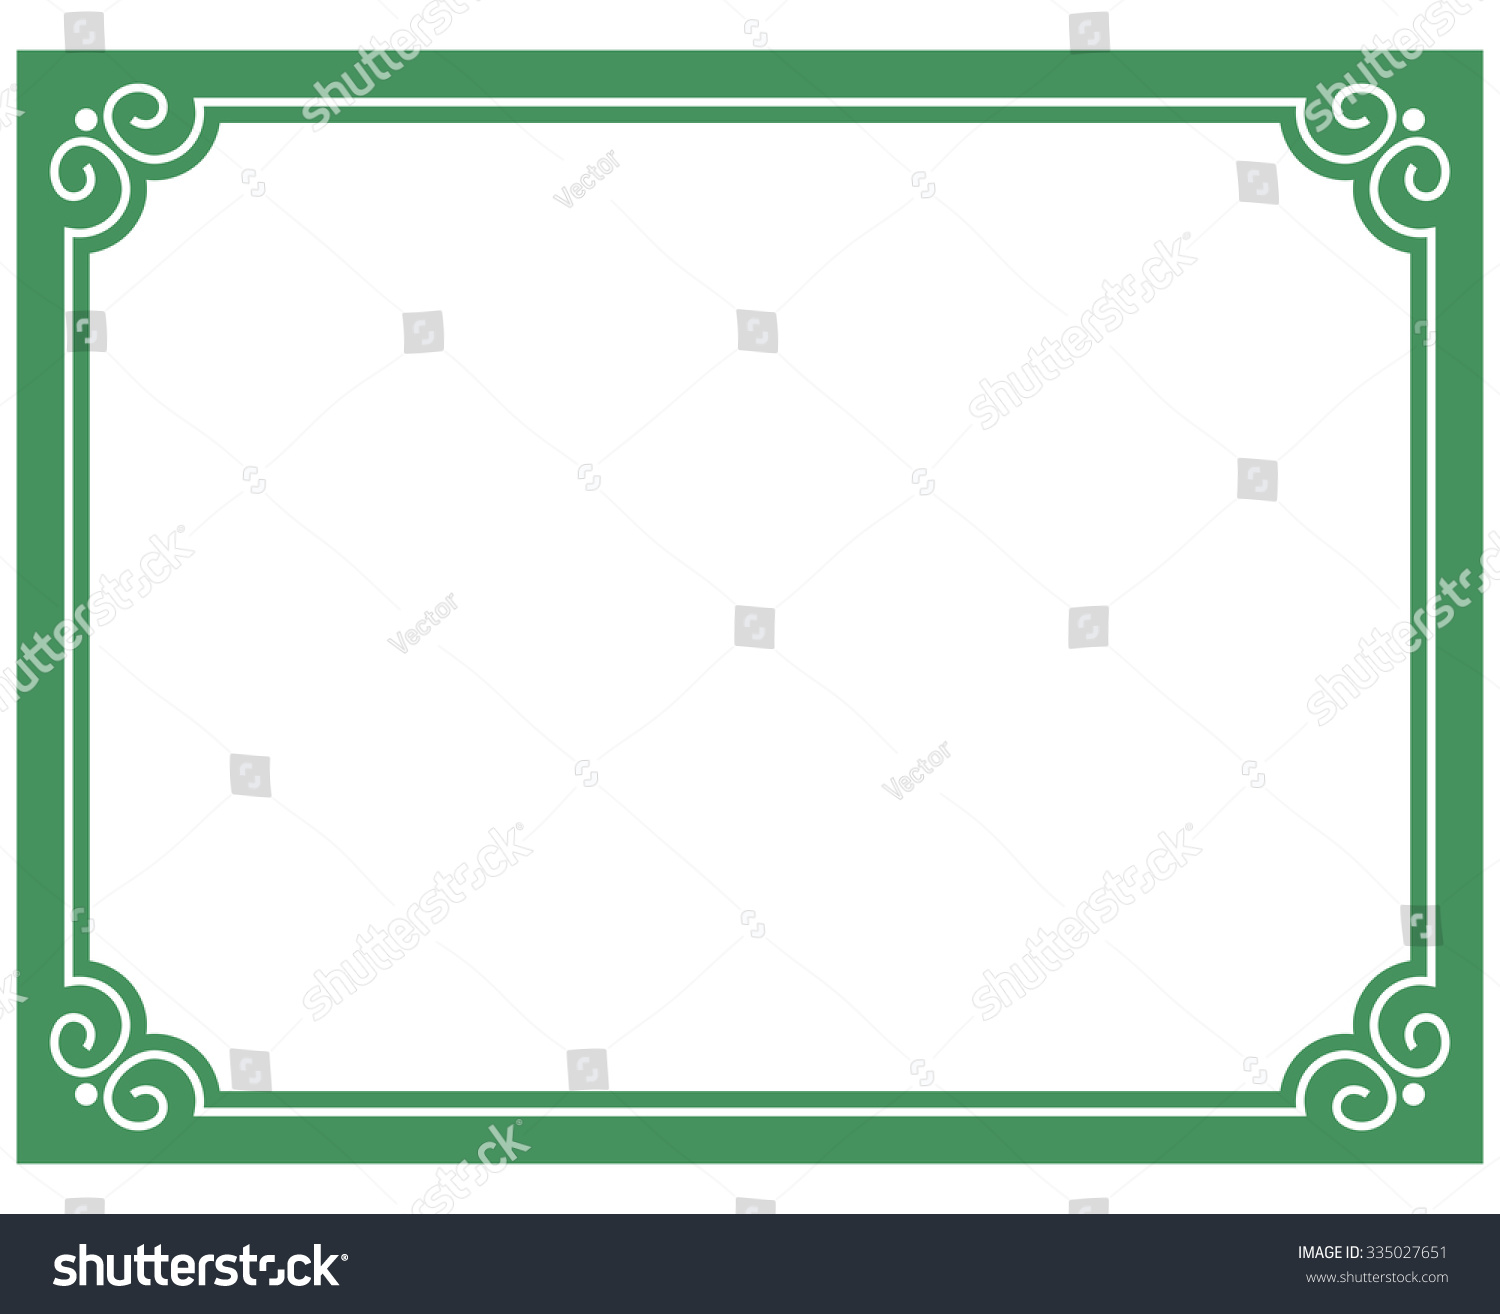 green border frame deco vector art stock vector 335027651 shutterstock. Black Bedroom Furniture Sets. Home Design Ideas